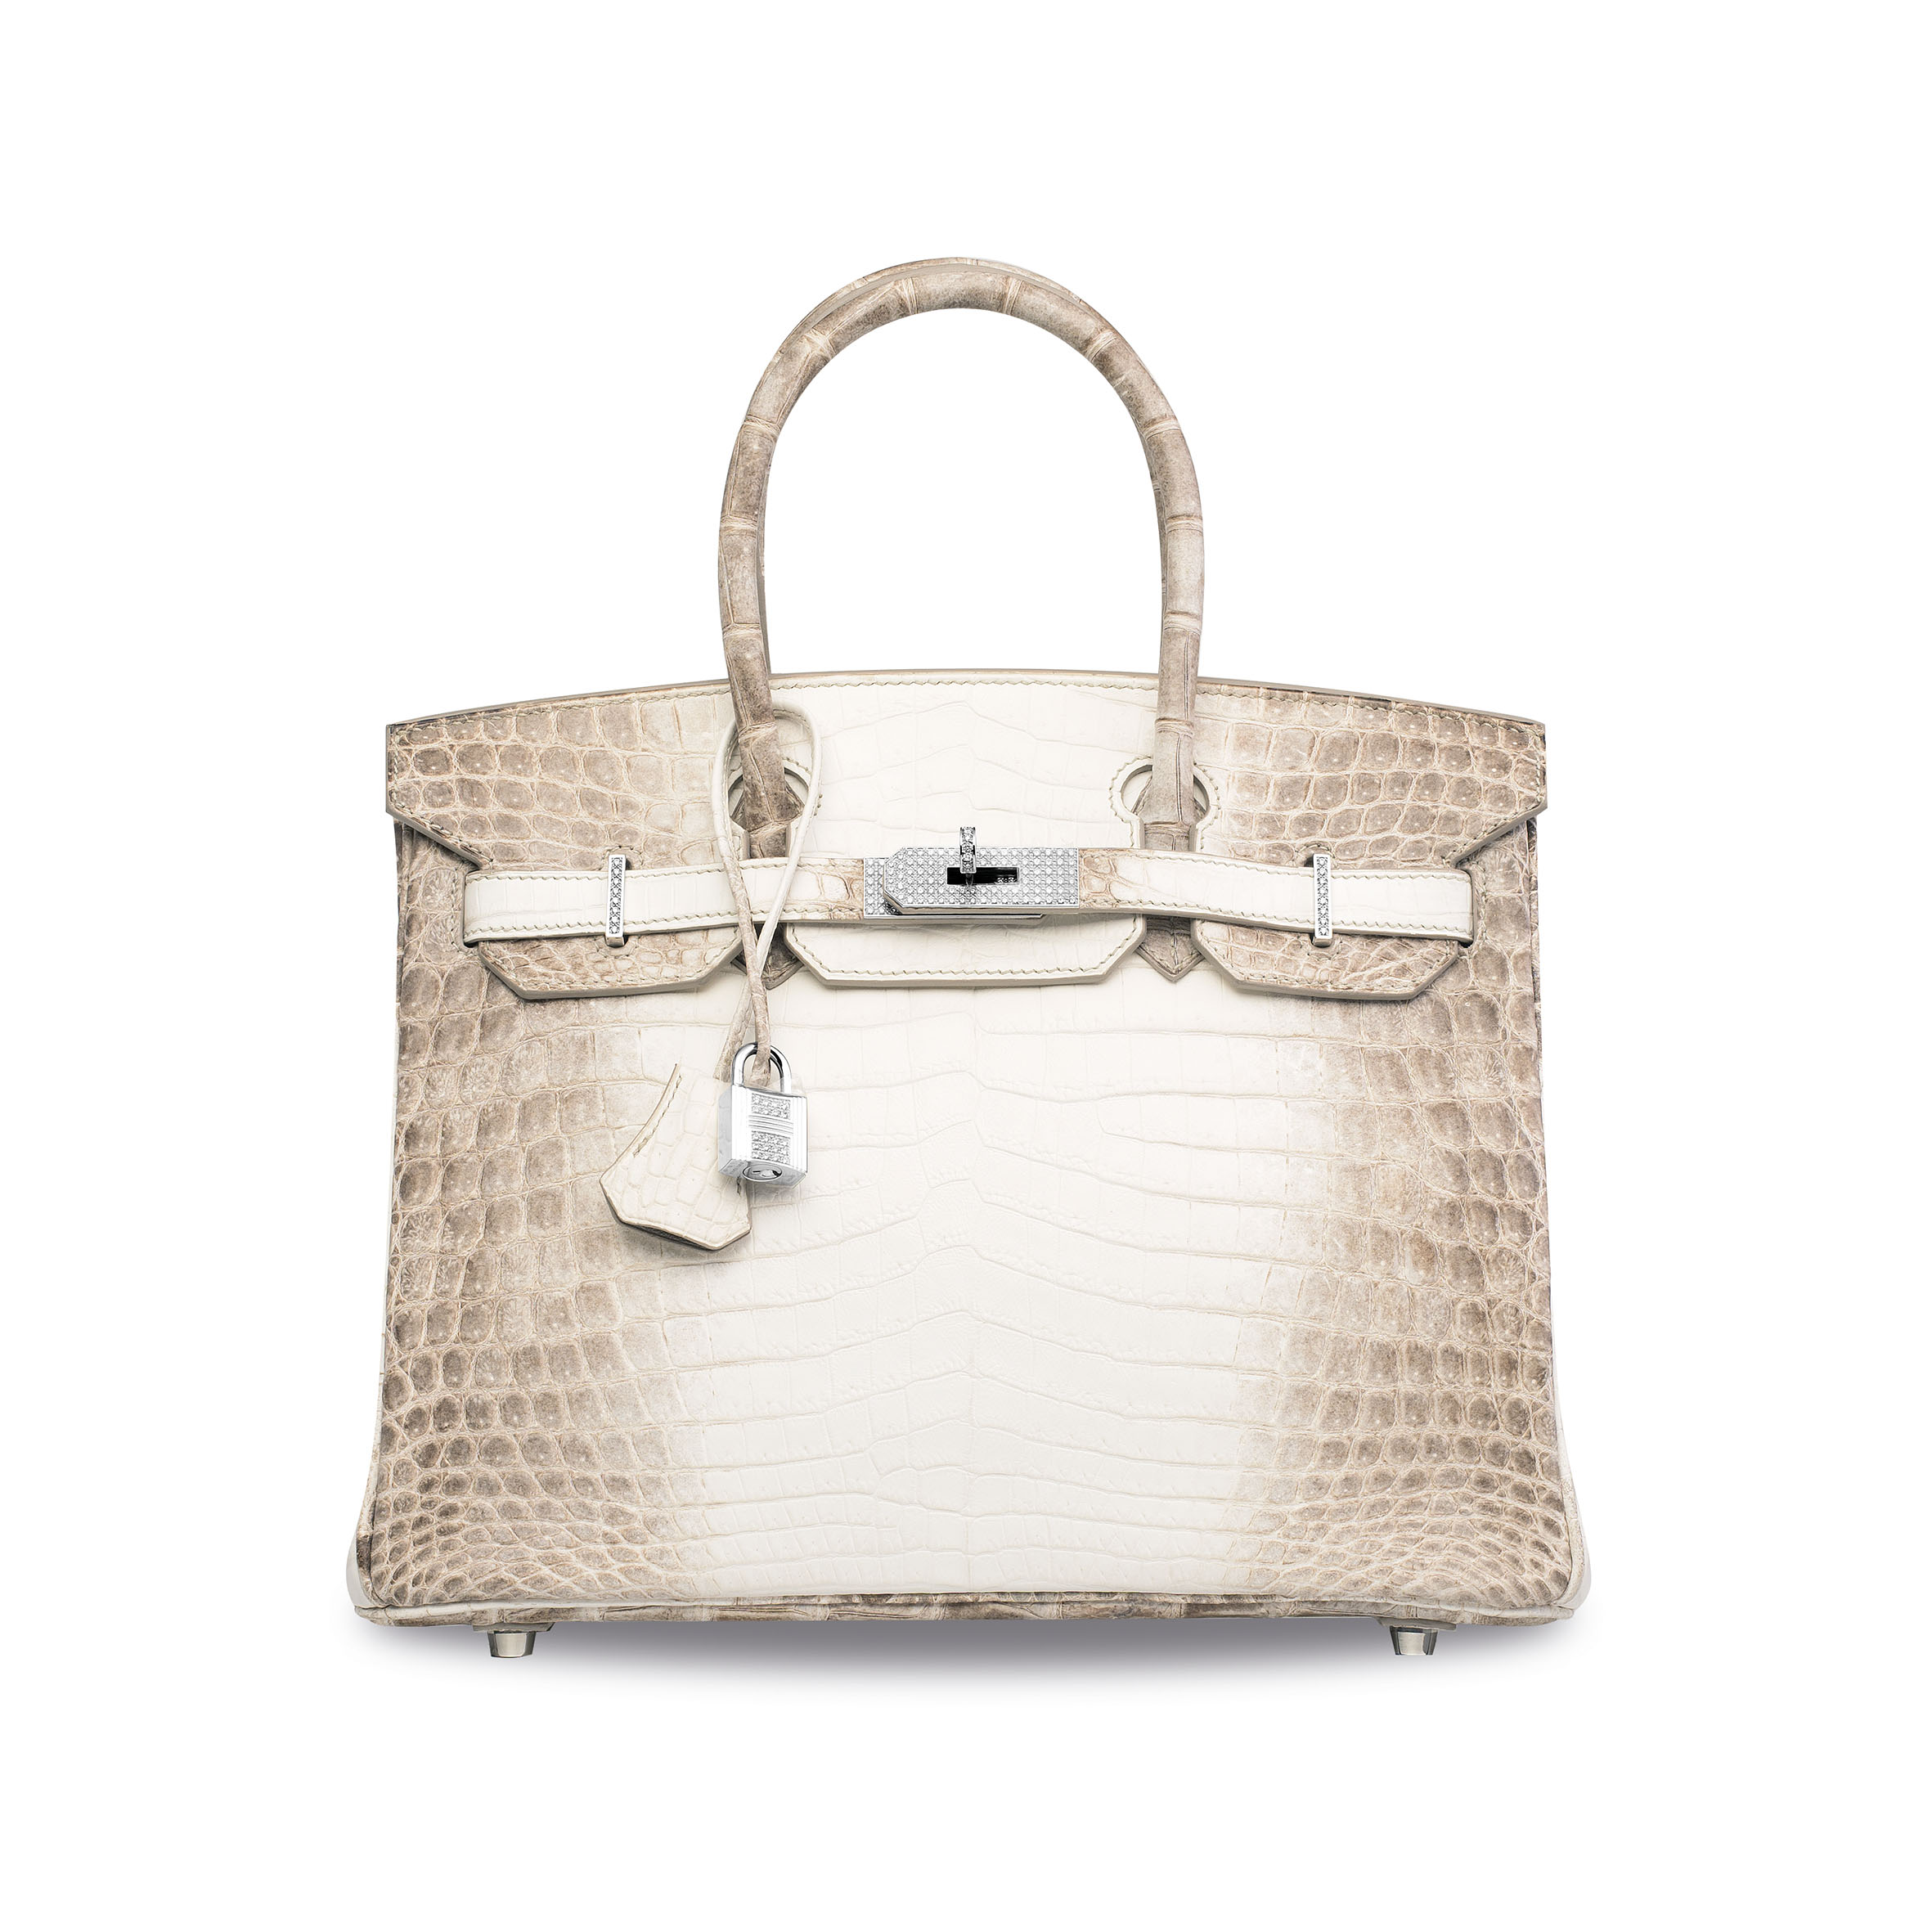 AN EXCEPTIONAL, MATTE WHITE HIMALAYA NILOTICUS CROCODILE DIAMOND BIRKIN 30 WITH 18K WHITE GOLD & DIAMOND HARDWARE